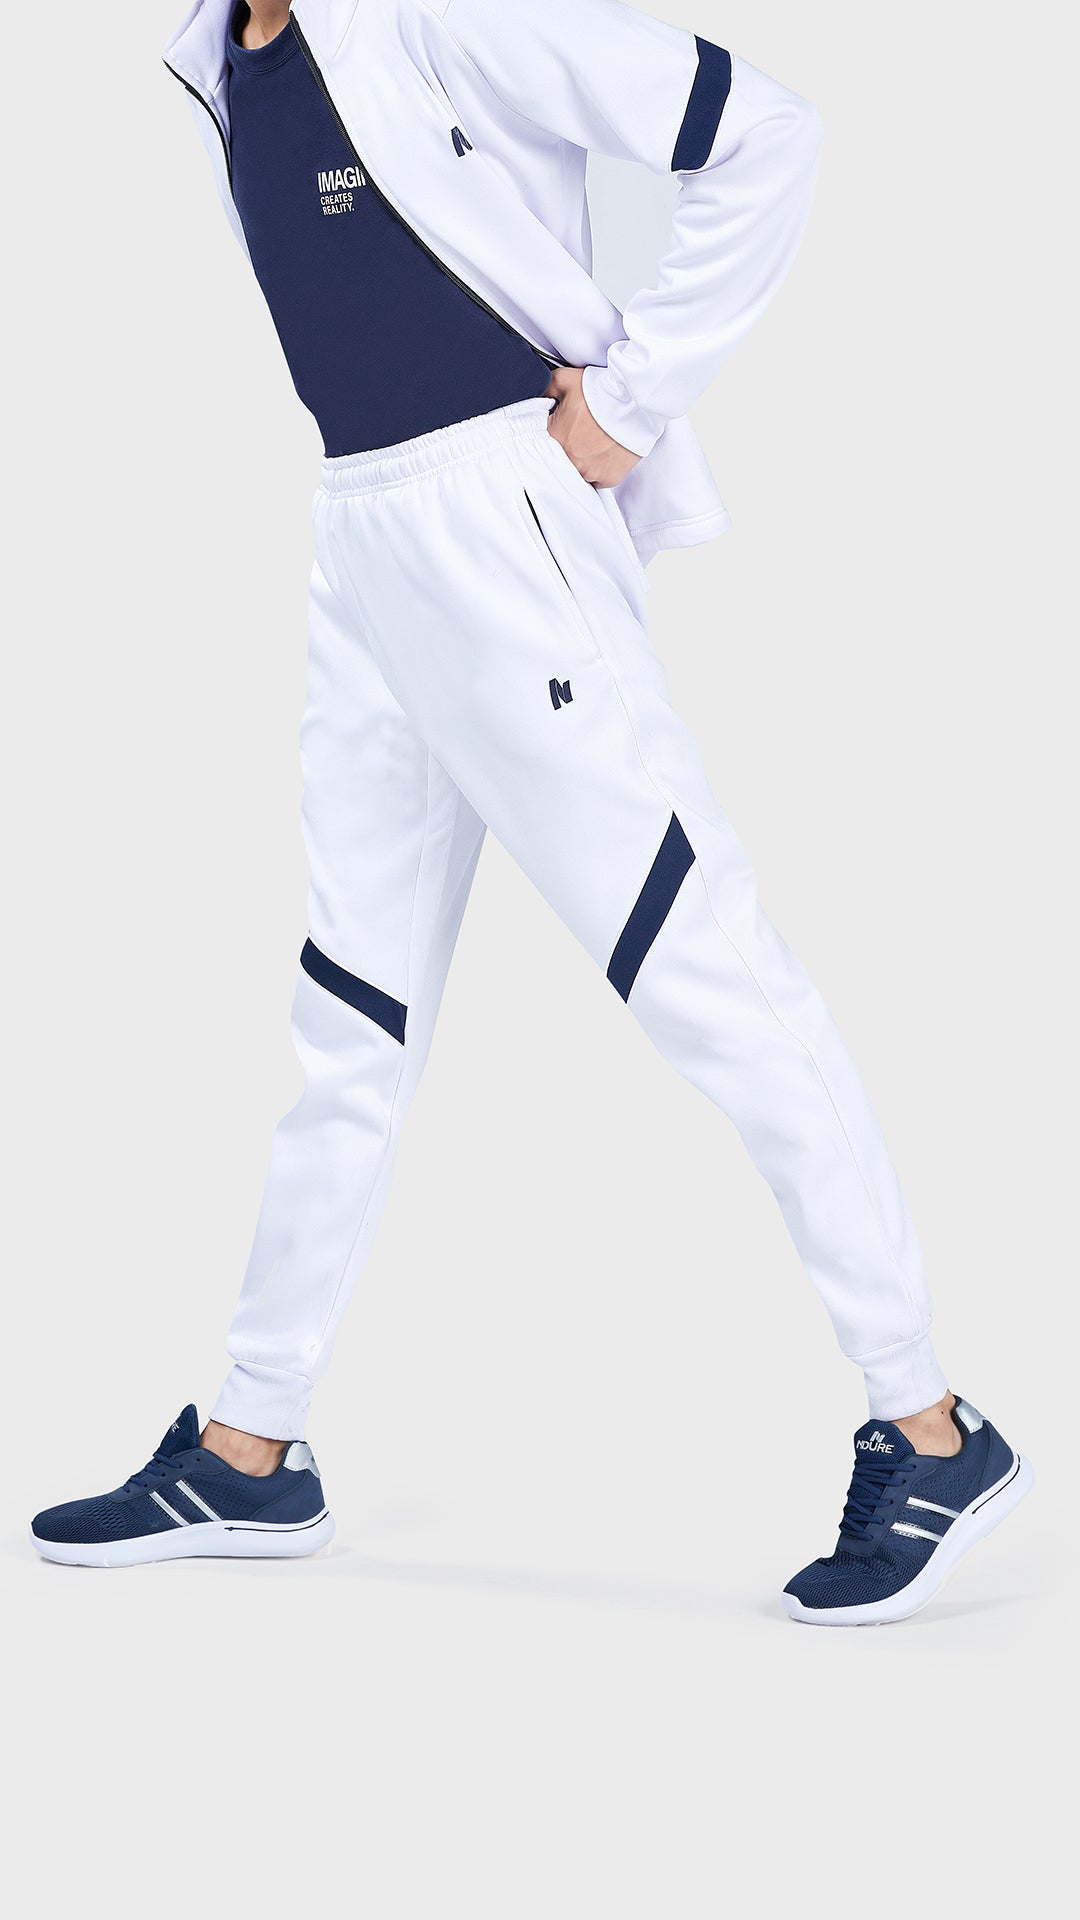 Men's Winter Dri-Fit Track Suit